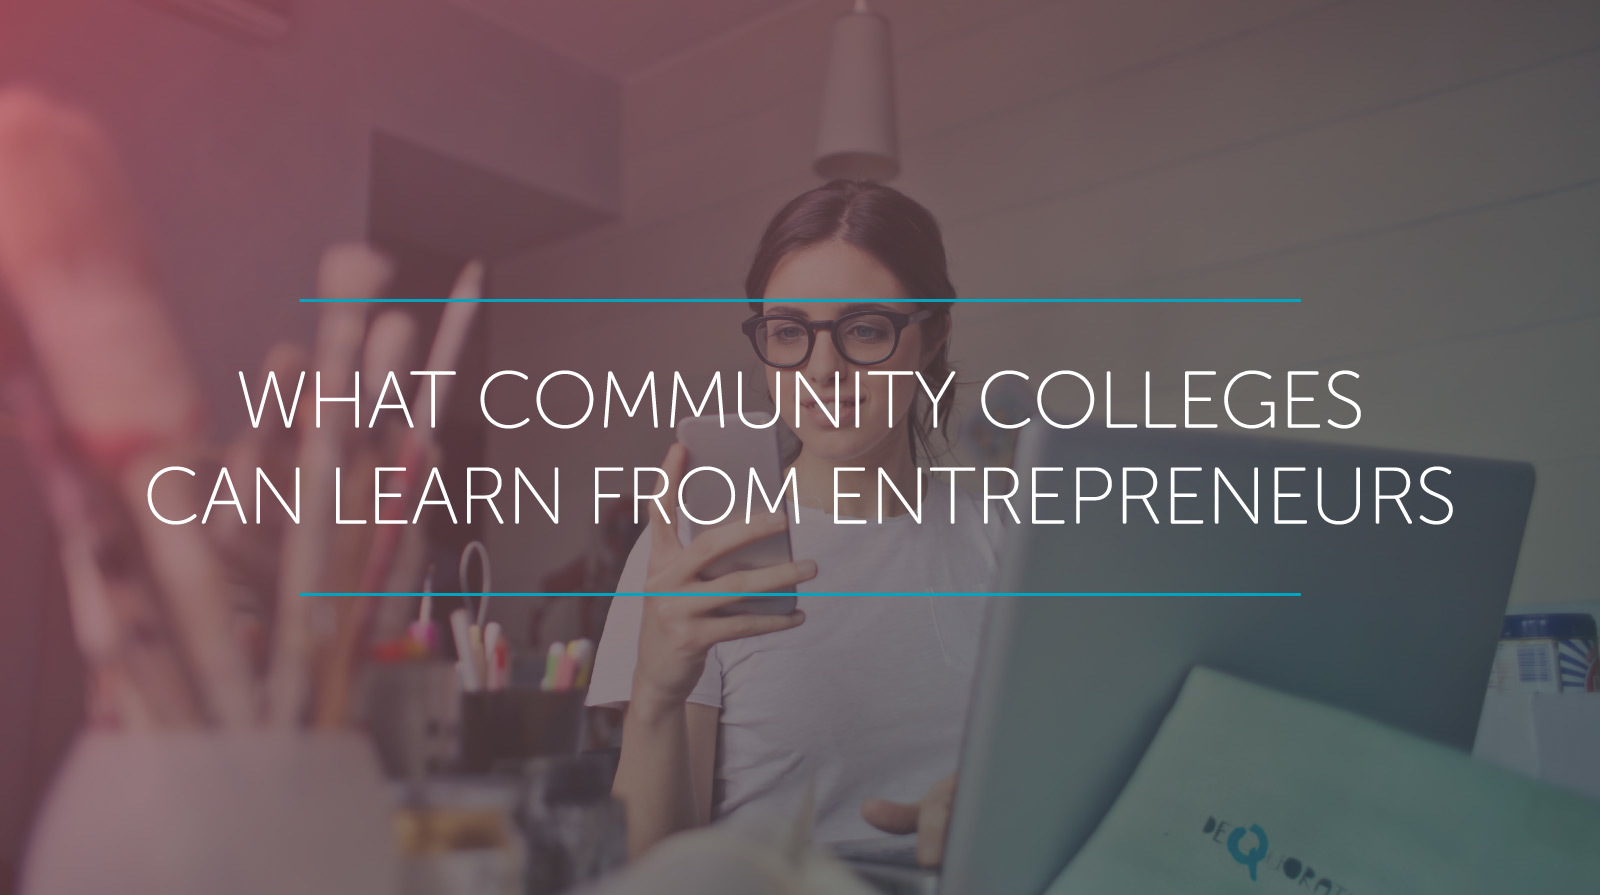 community colleges can learn from Entrepreneurs